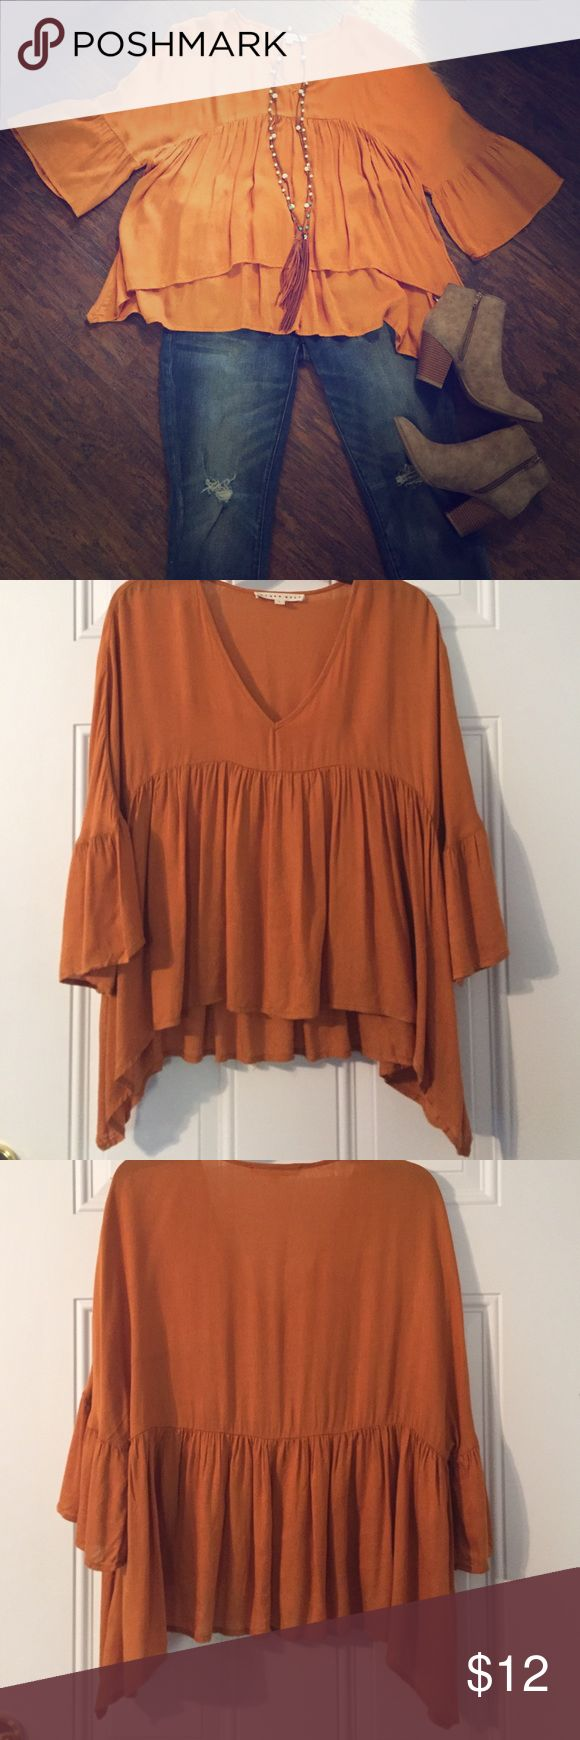 Peplum style top! Three quarter length sleeve top with peplum waist.  Gorgeous mustard fall color.  I loved this top soo much I bought it in large!  I didn't care.  However, after wearing it a couple of times, I see that the fit is not good on me!  Still super cute!!  100% rayon, hand wash and line dry.  I have hand washed it once.  There is a tiny stain on the sleeve.  I didn't have any spot remover so it's possible it could still come out. blush noir Tops Blouses